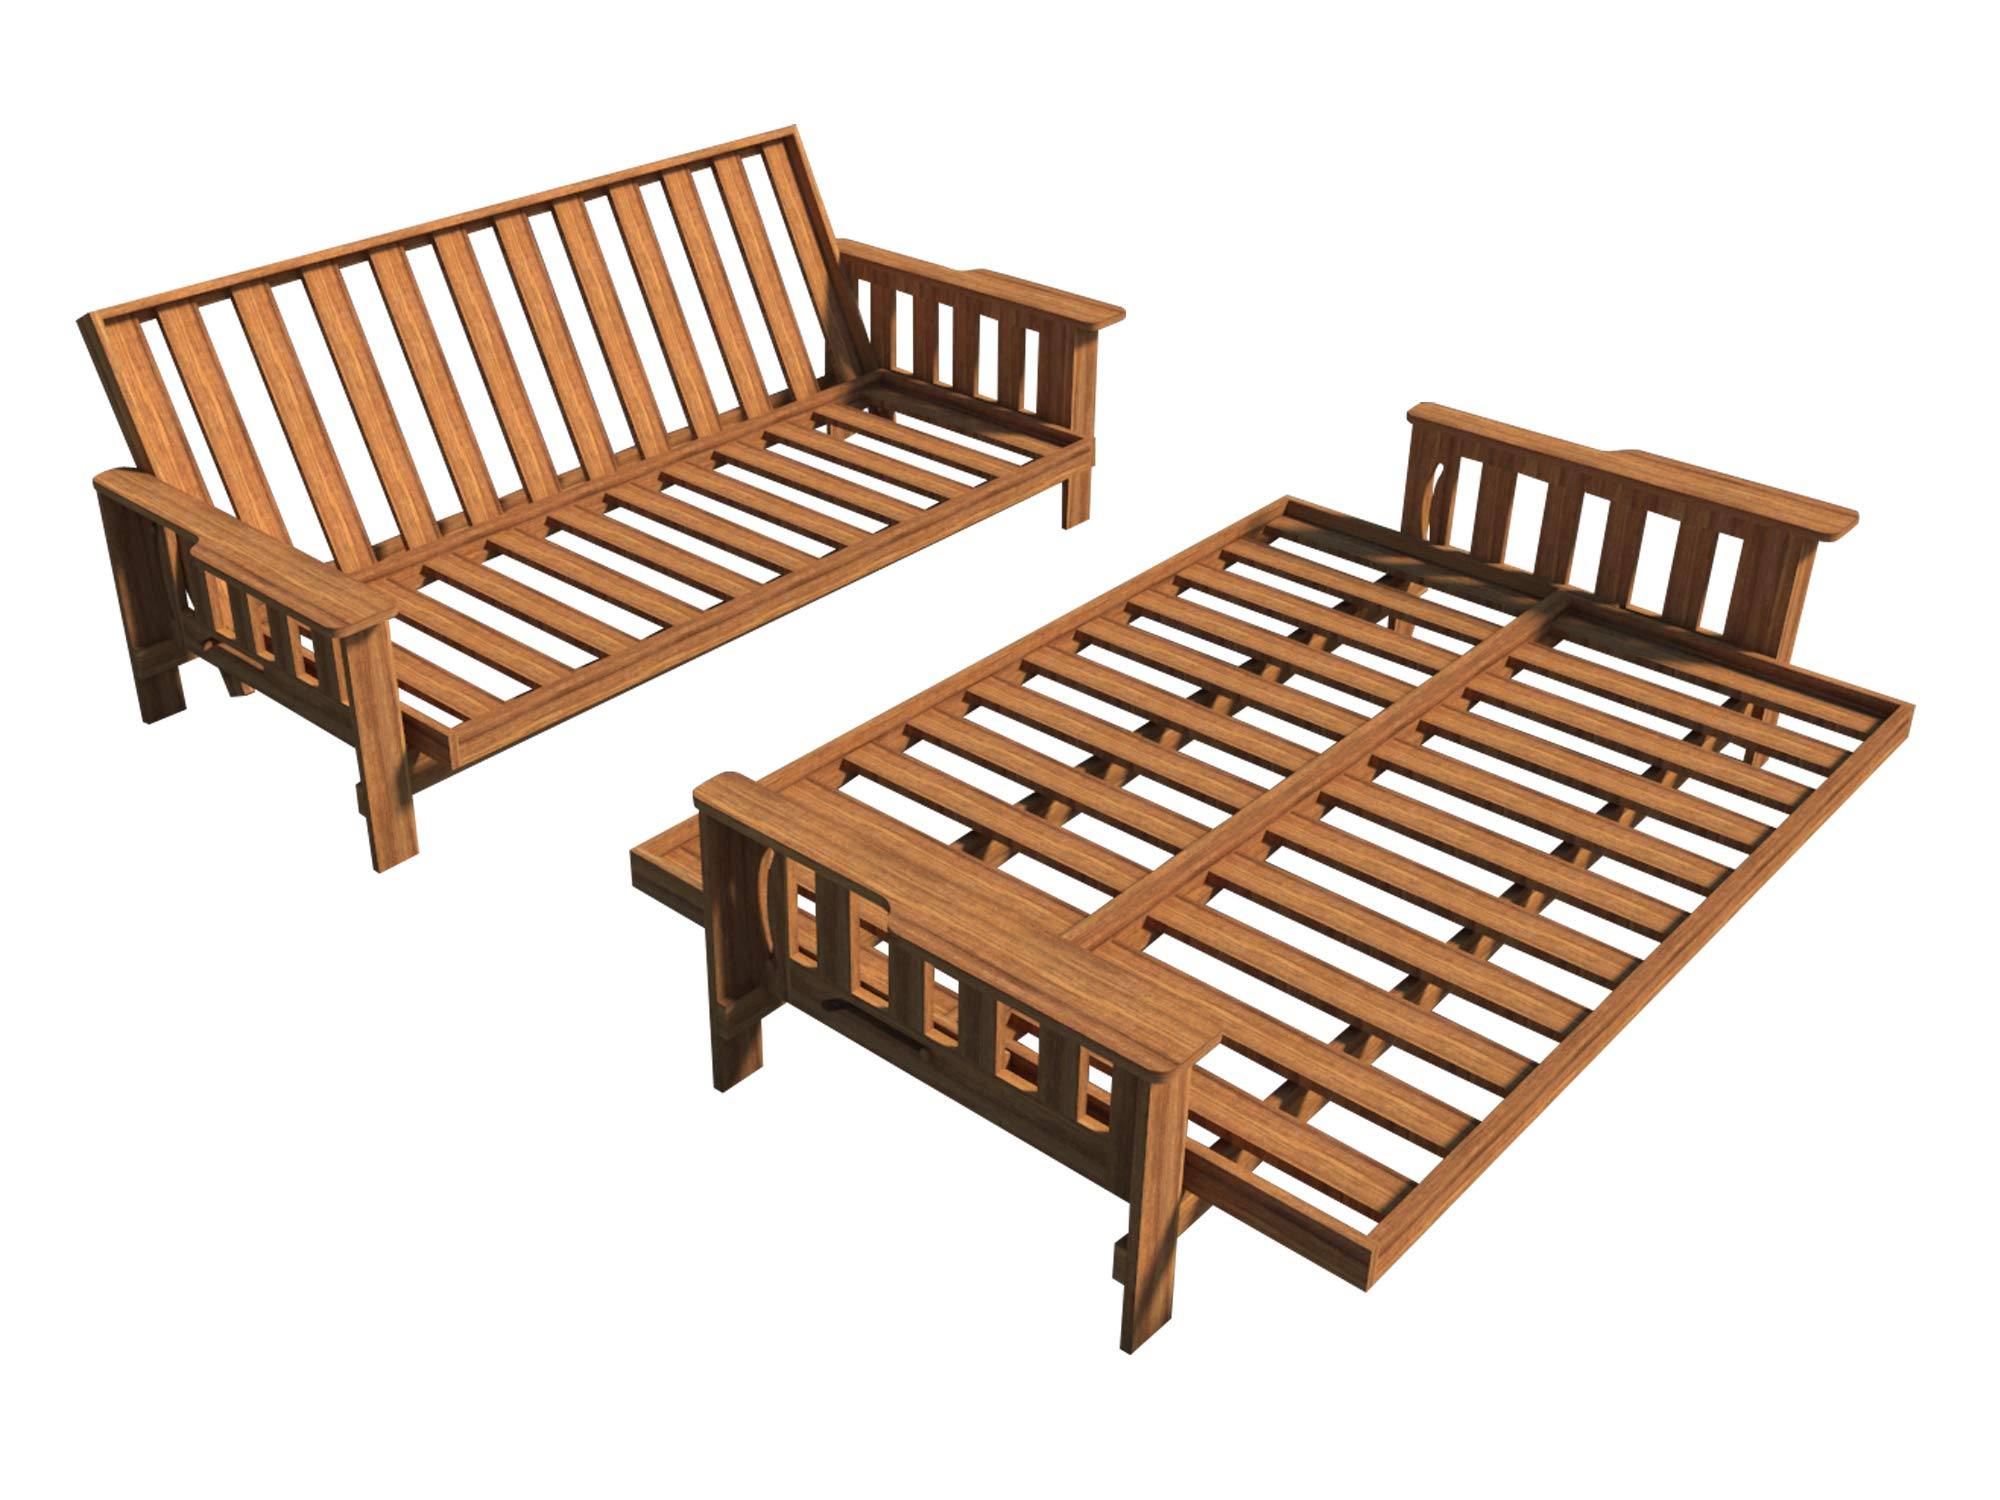 Futon Sofa Bed Plans DIY Lounger Couch Sleeper Furniture Building Woodworking by DIY Plans